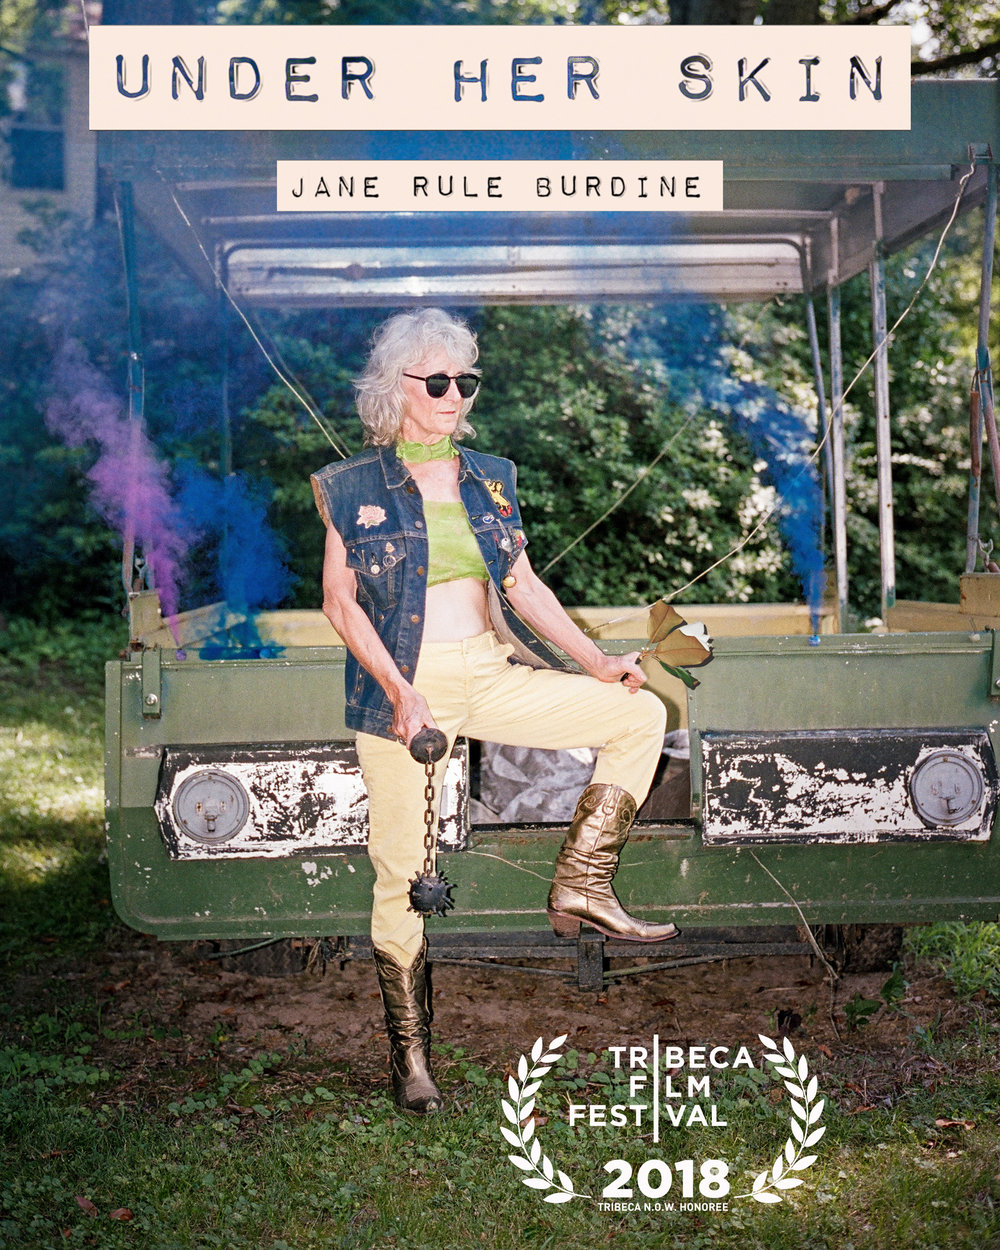 NEWS: We got into Tribeca Film Festival 2018!!!  With Under Her Skin: Jane Rule Burdine. View Trailer  Here.